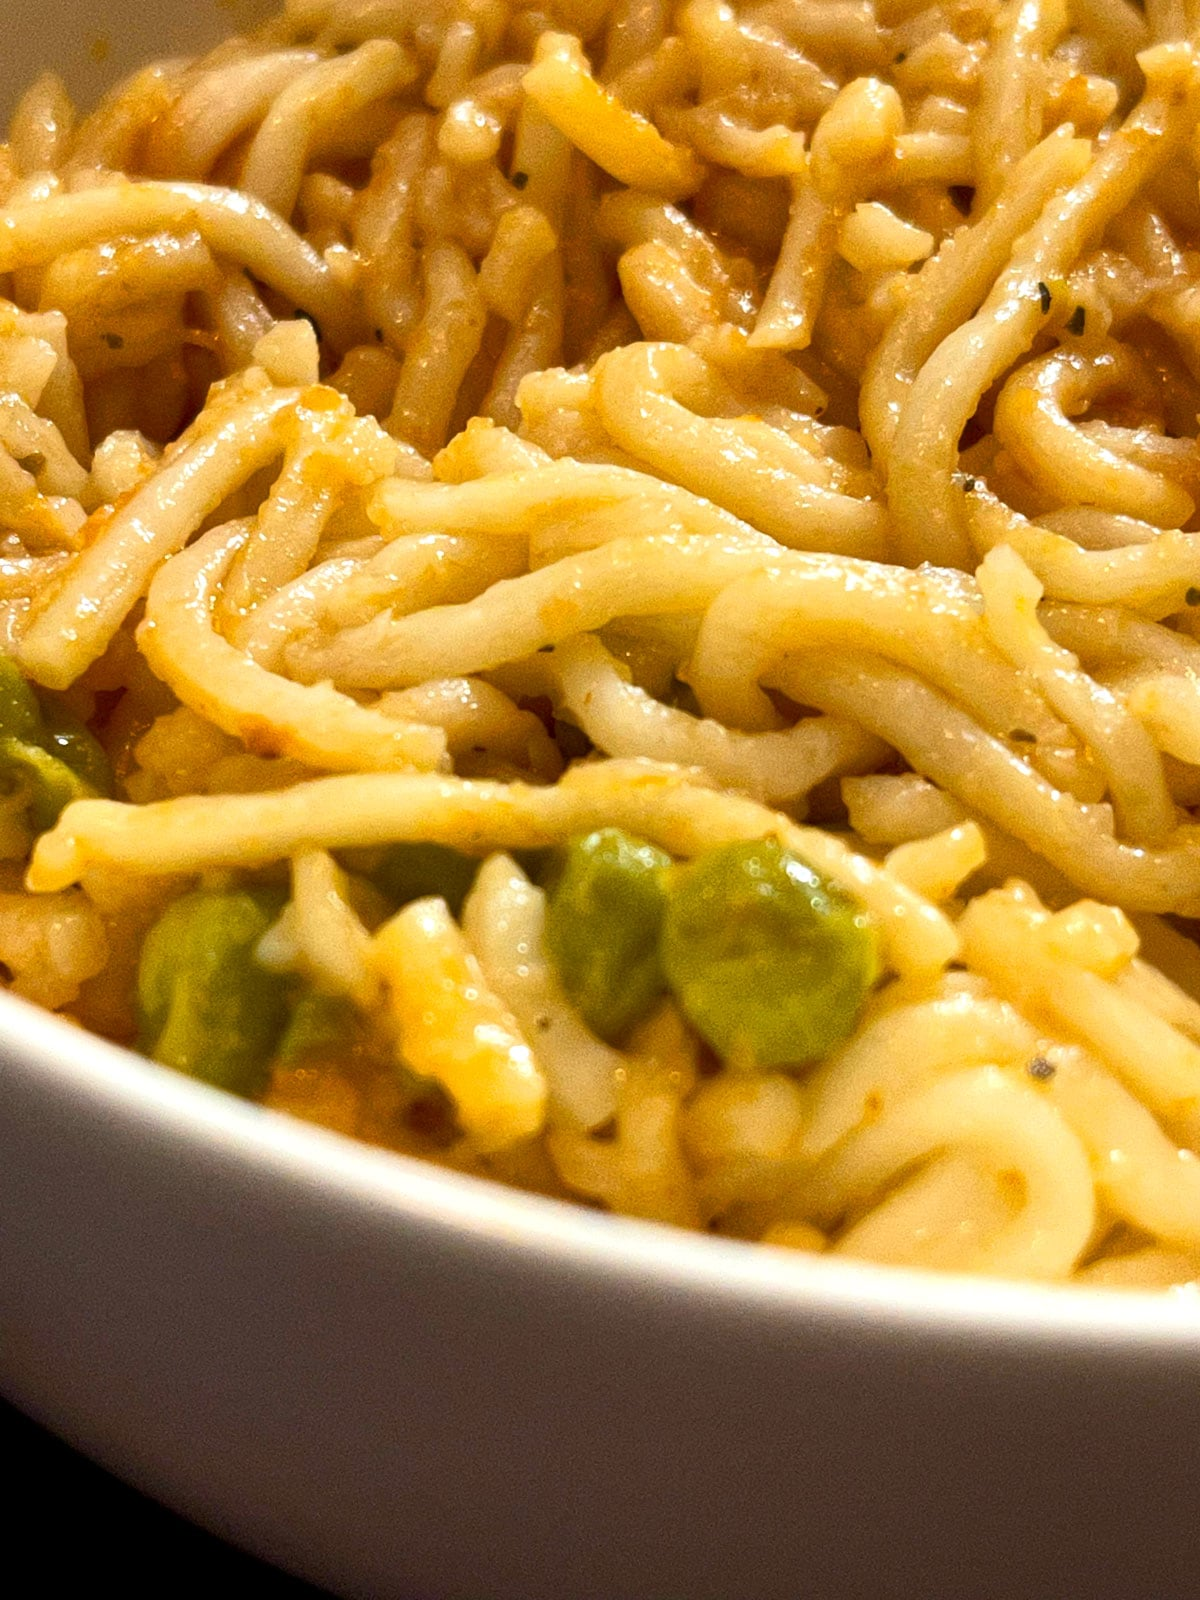 spicy garlic chili curry noodles